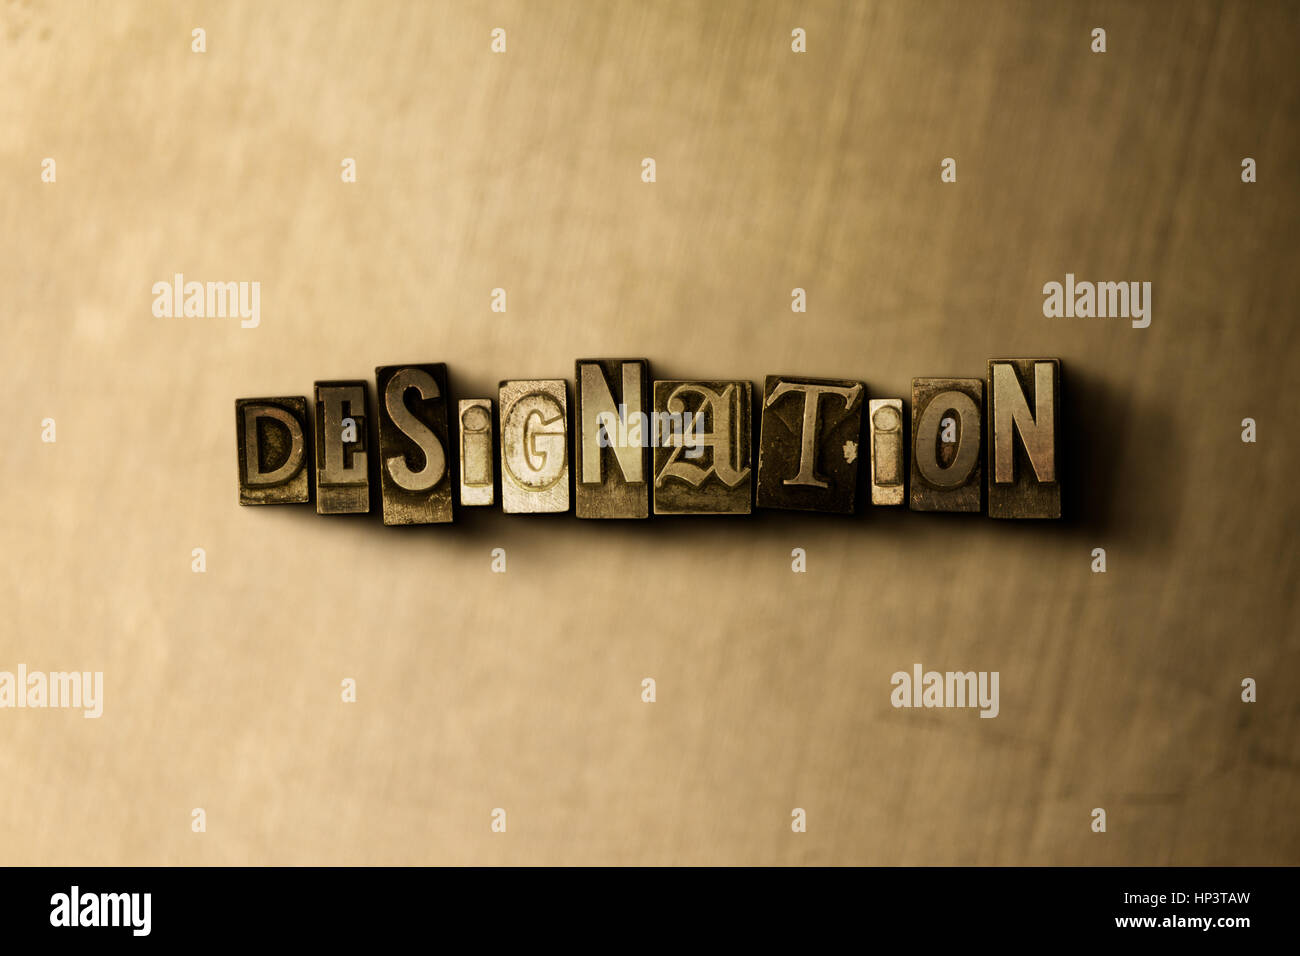 DESIGNATION - close-up of grungy vintage typeset word on metal backdrop. Royalty free stock illustration.  Can be - Stock Image